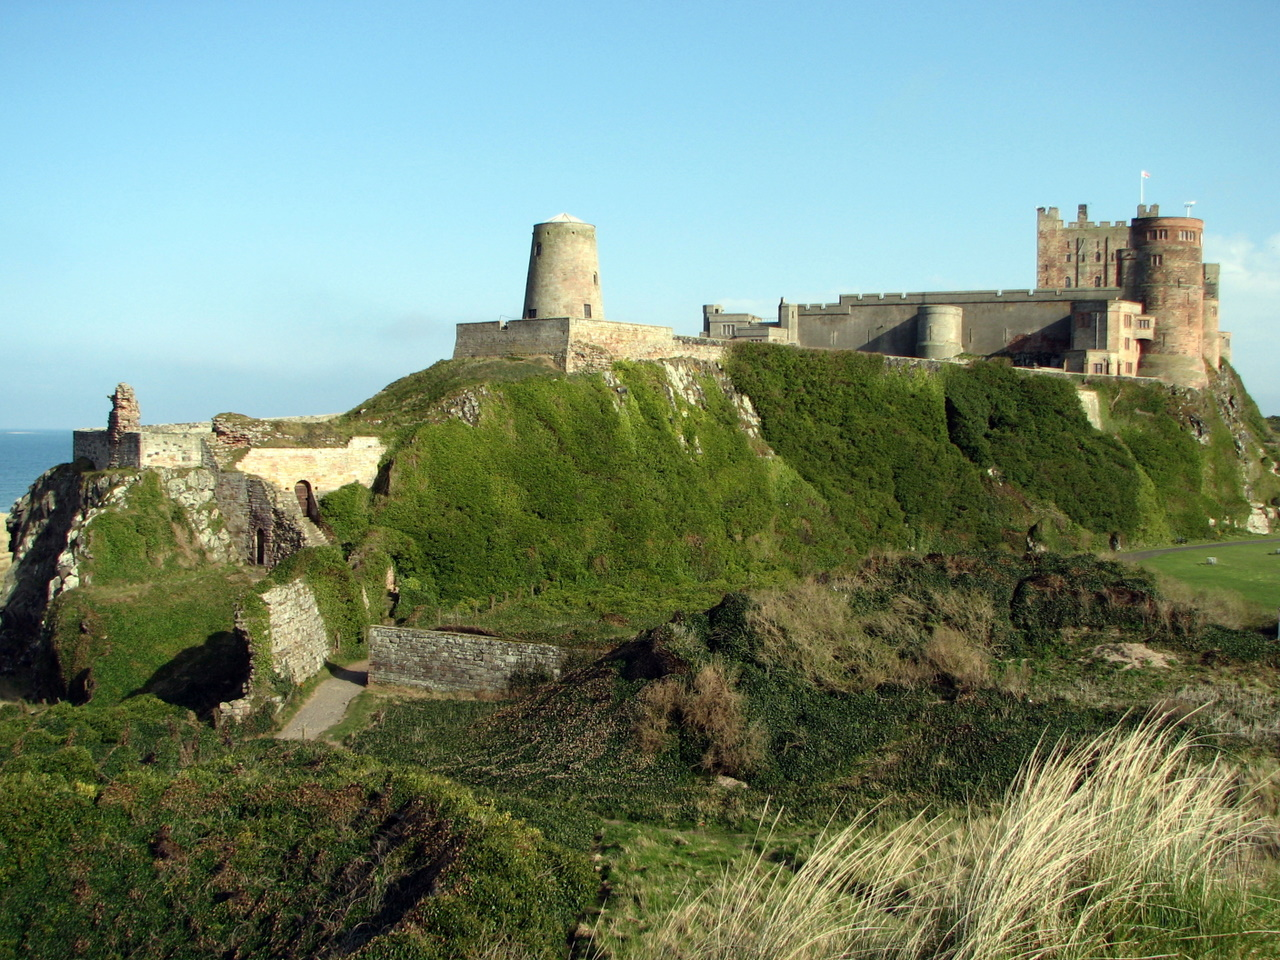 bamburgh castle - photo #22